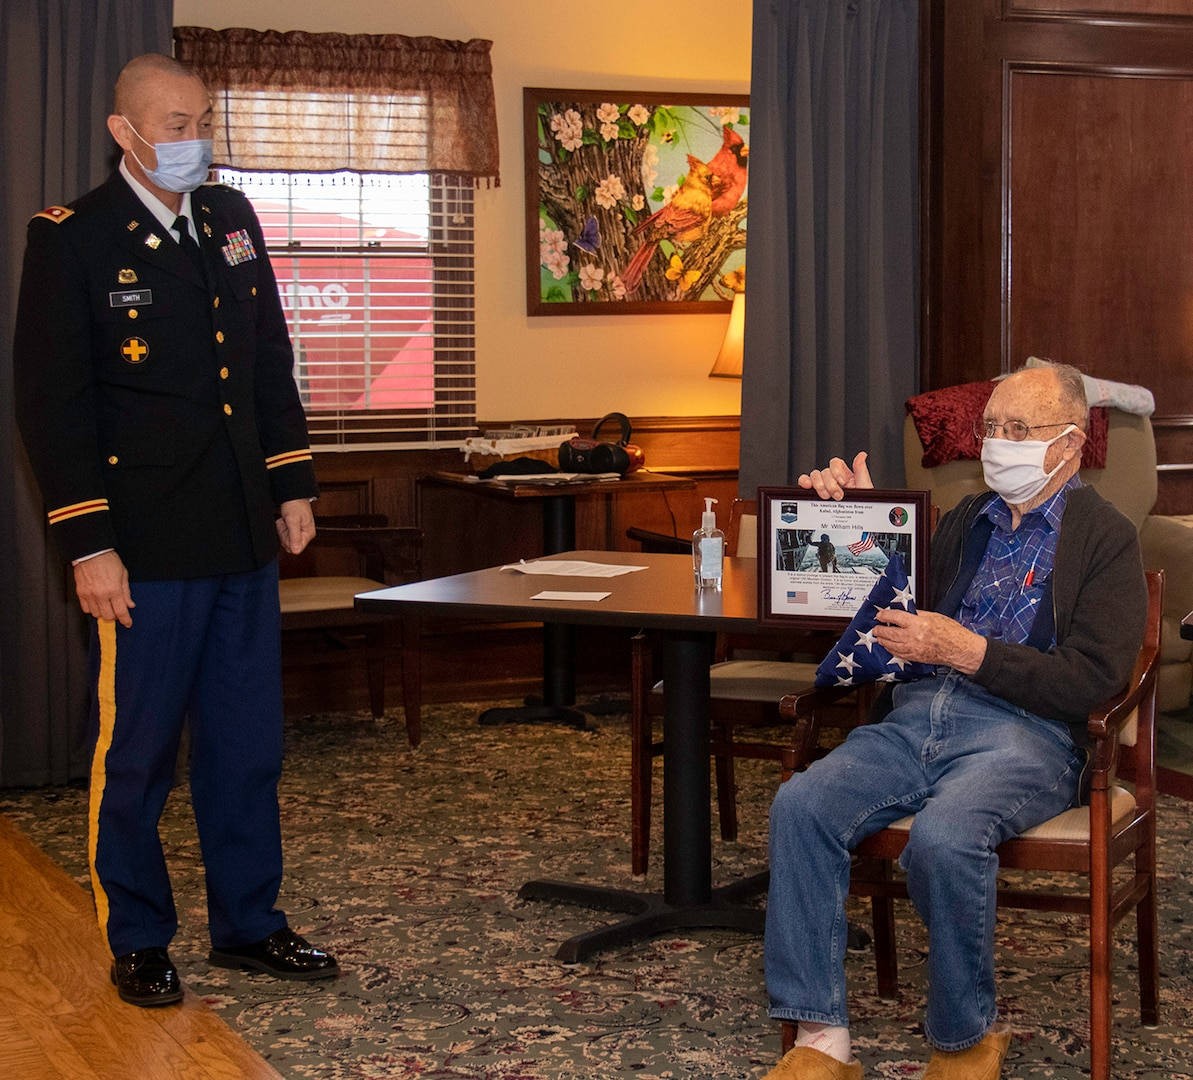 William Hills of Freeport, Illinois, shows off the U.S. flag and certificate presented by Lt. Col. Eric Smith of Springfield, Illinois, in honor of Hills' 97th birthday Jan. 29.